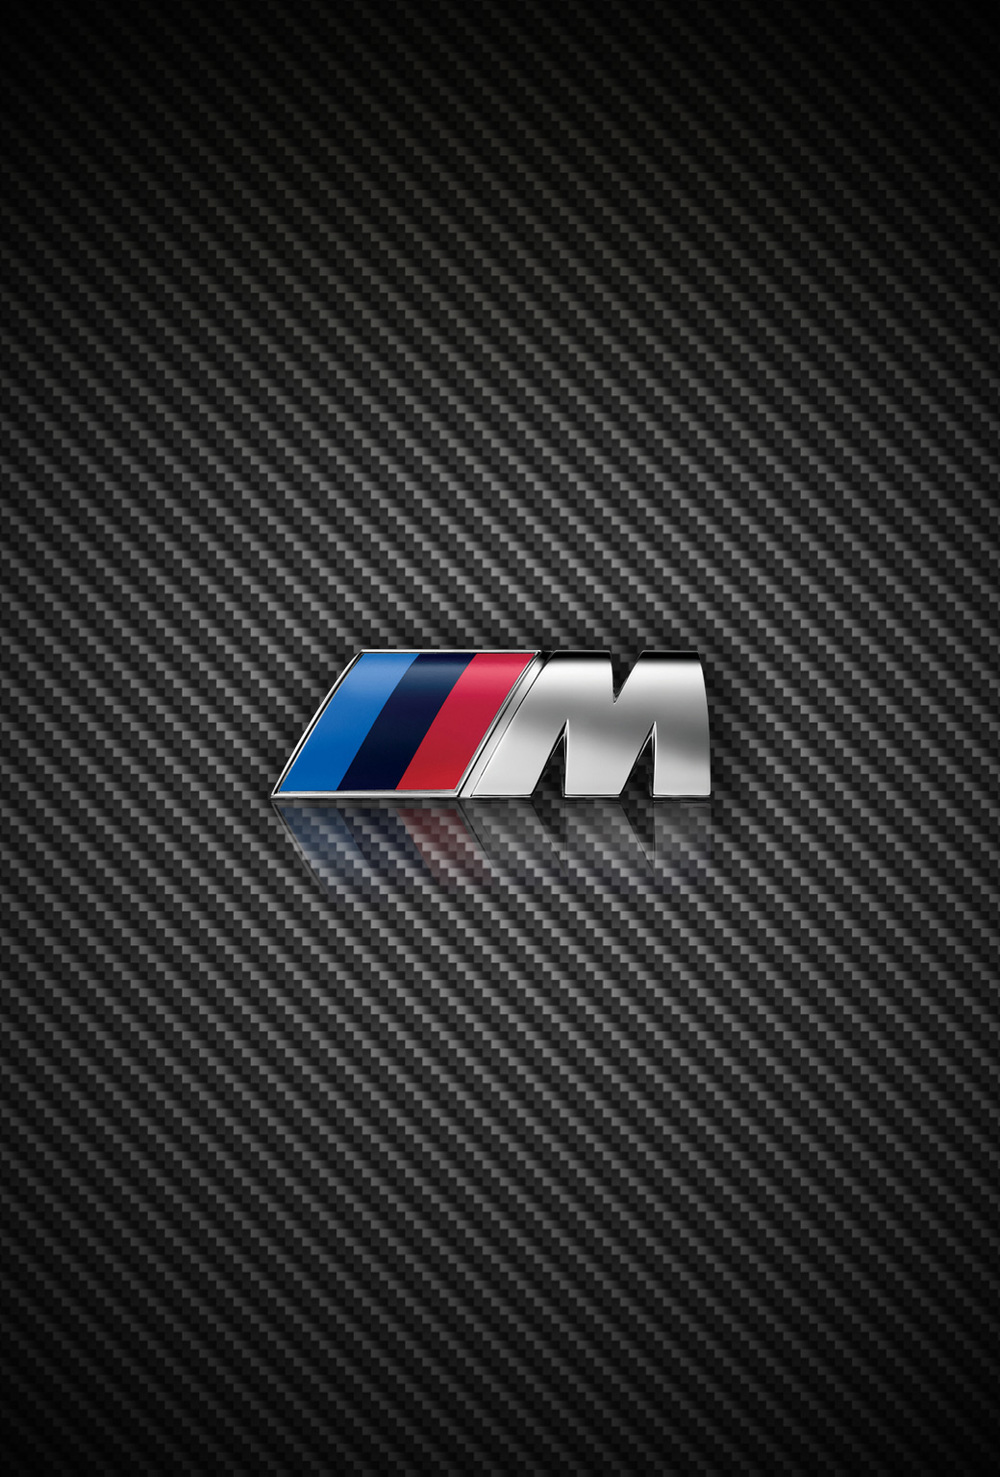 carbon fiber bmw and m power iphone wallpapers for ios 7